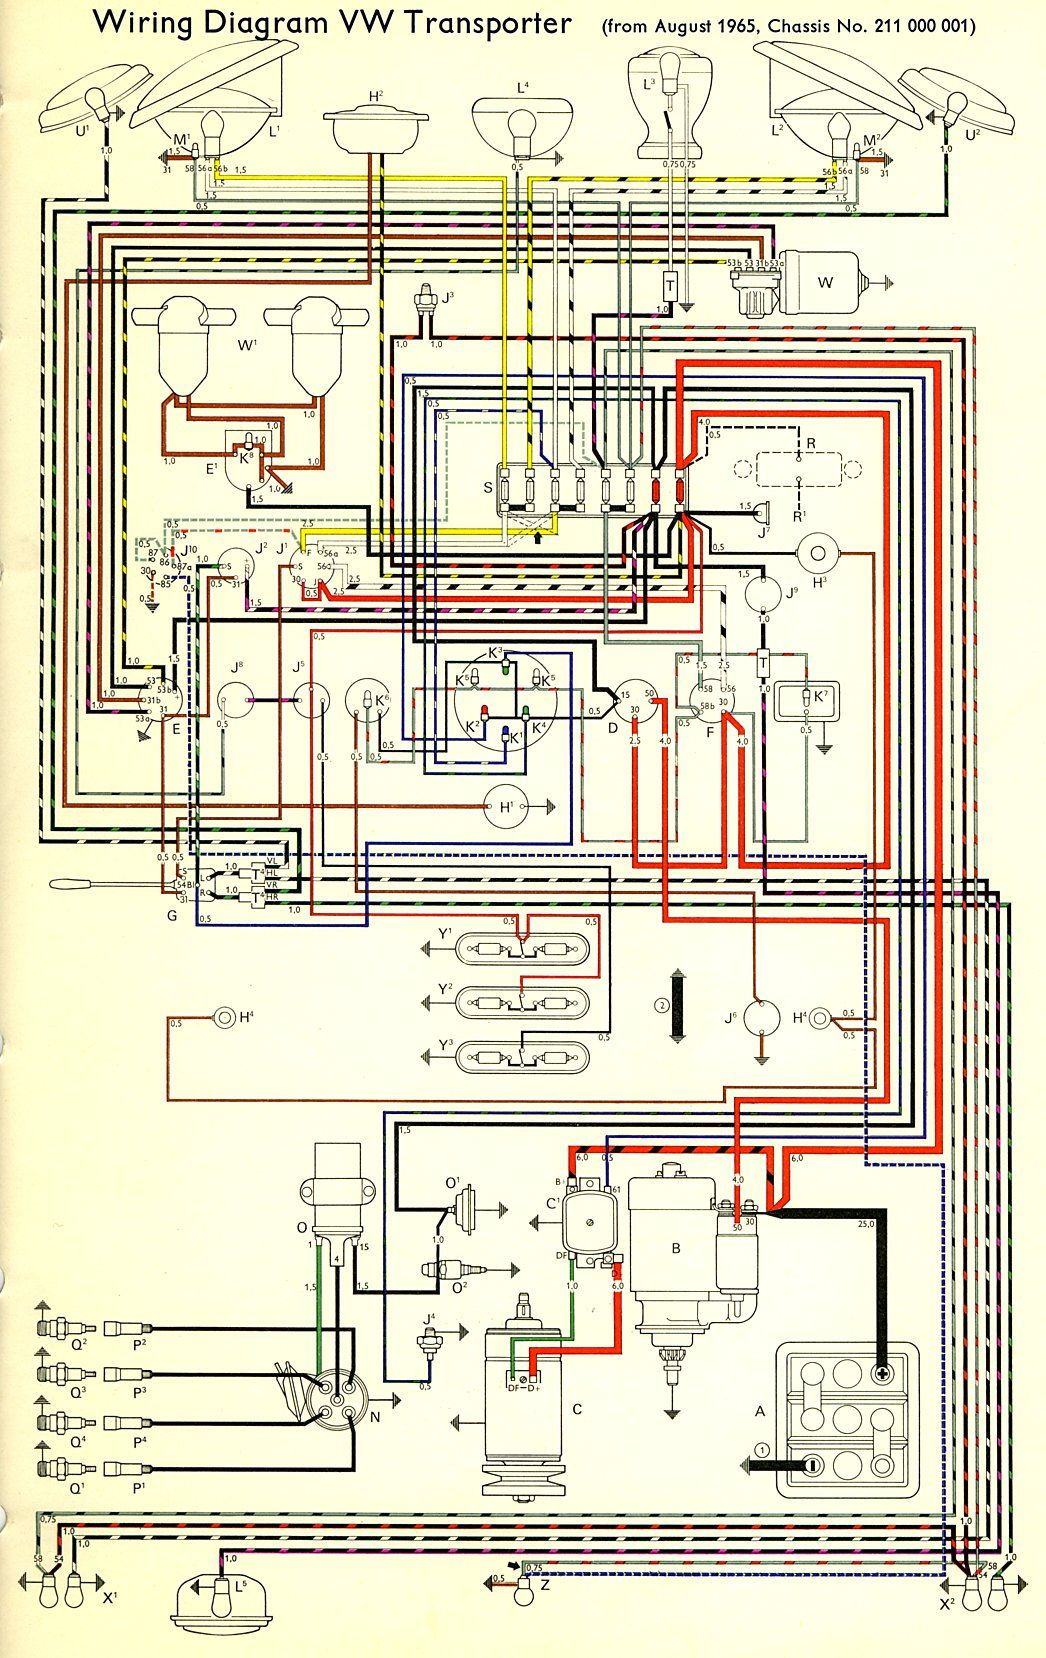 Vw Wire Diagram Wiring Schematic Diagrams One Transporter The Samba Bay Pride Volkswagen Alternator Schematics